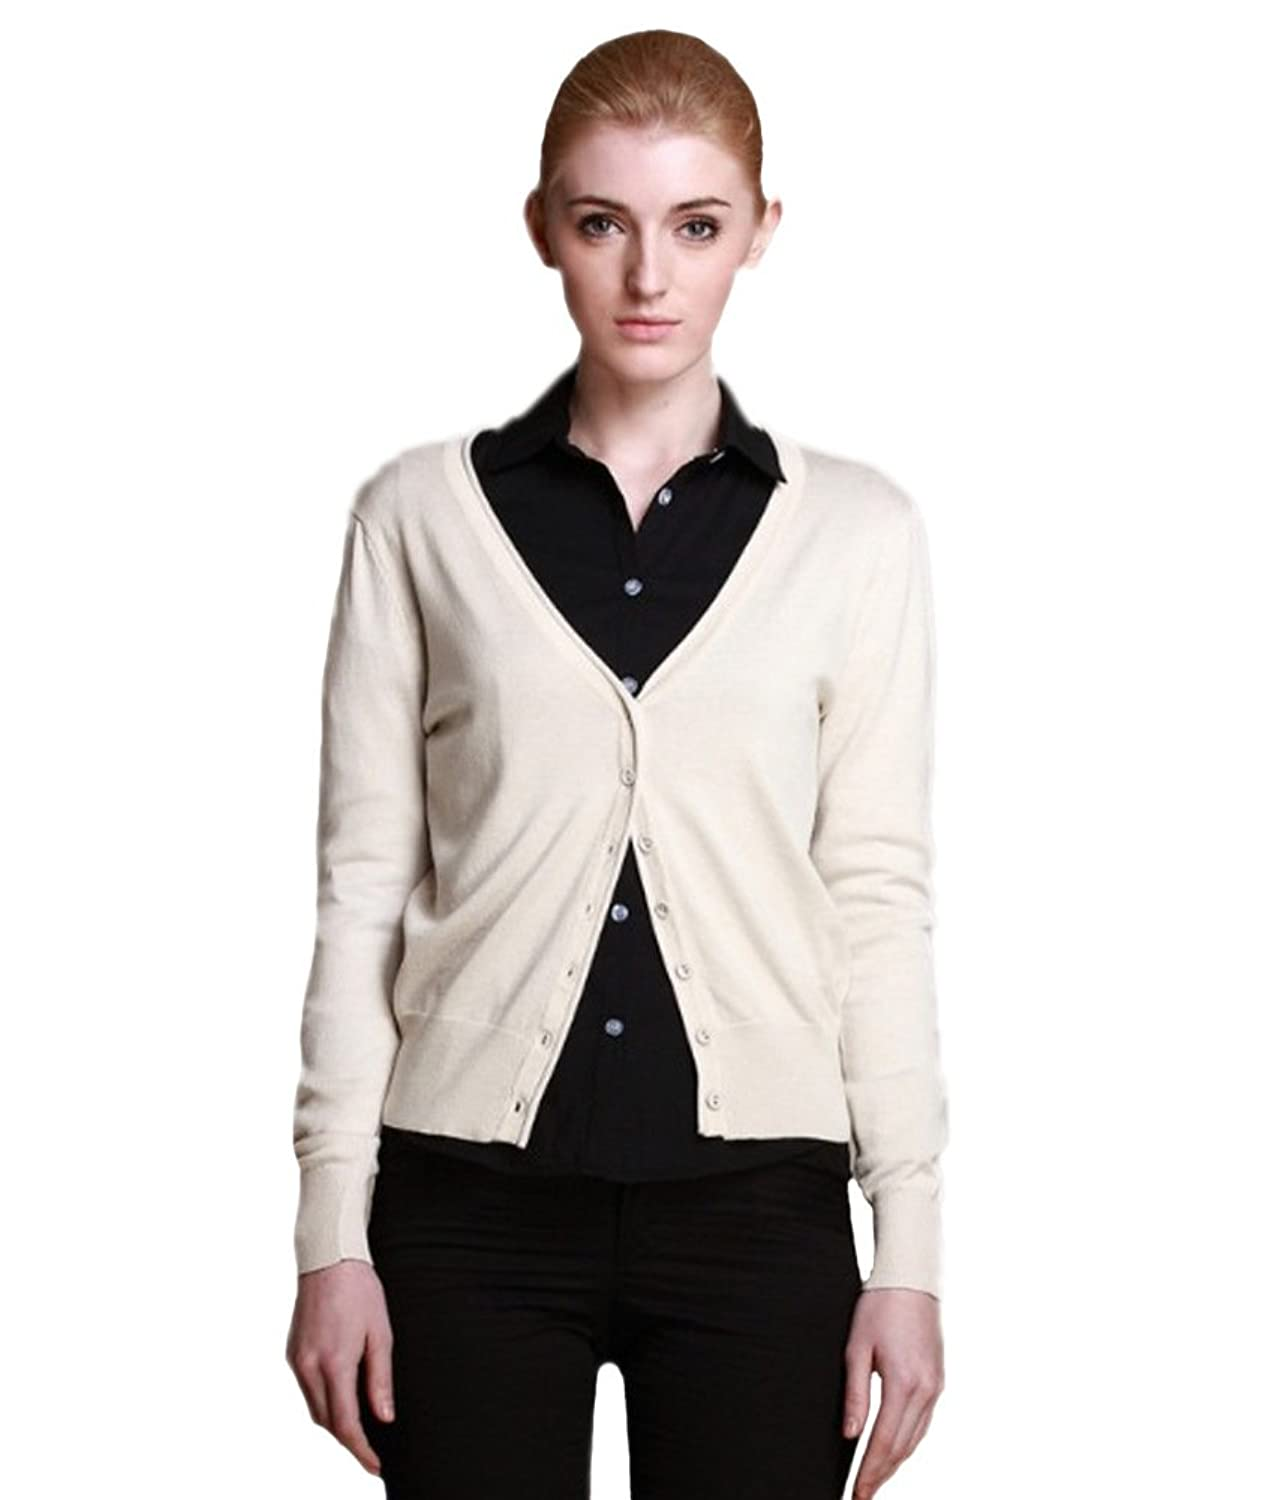 OU GRID Women's Basic V-neck Long Sleeve Solid Button Down Cardigan Sweater